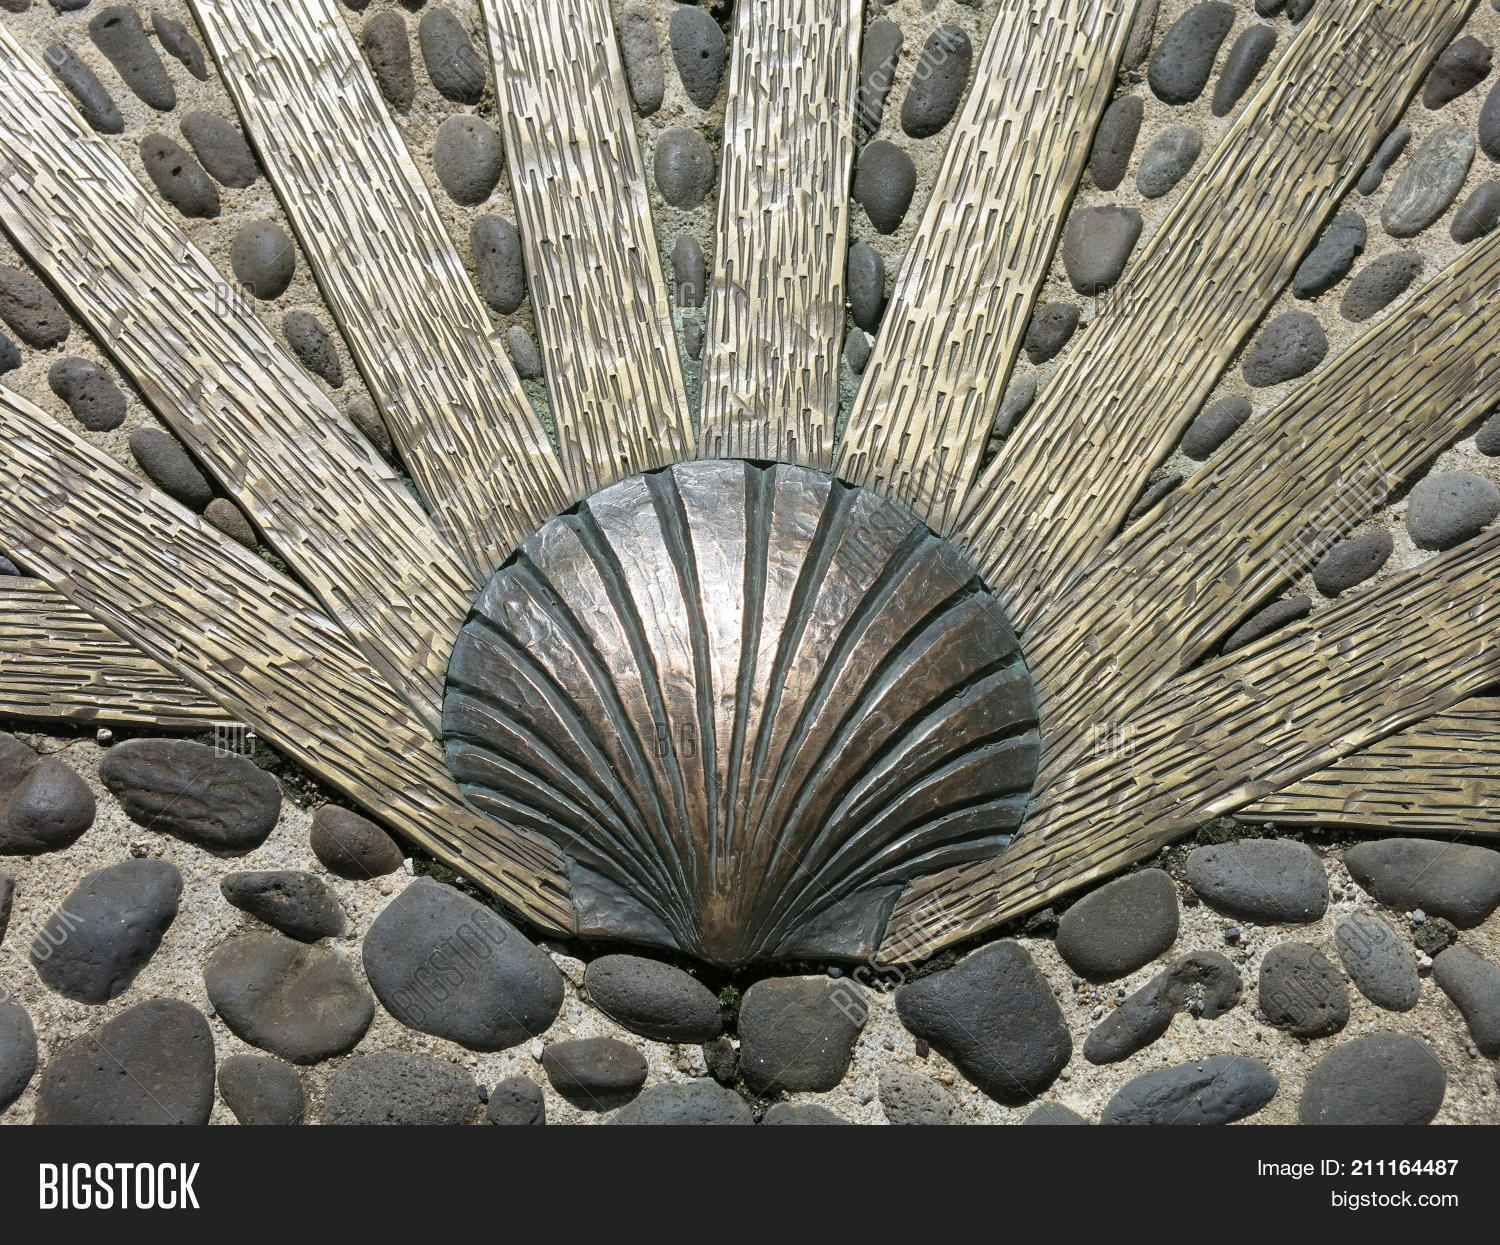 Camino Santiago Shell Scallop Shell Embedded Image Photo Free Trial Bigstock